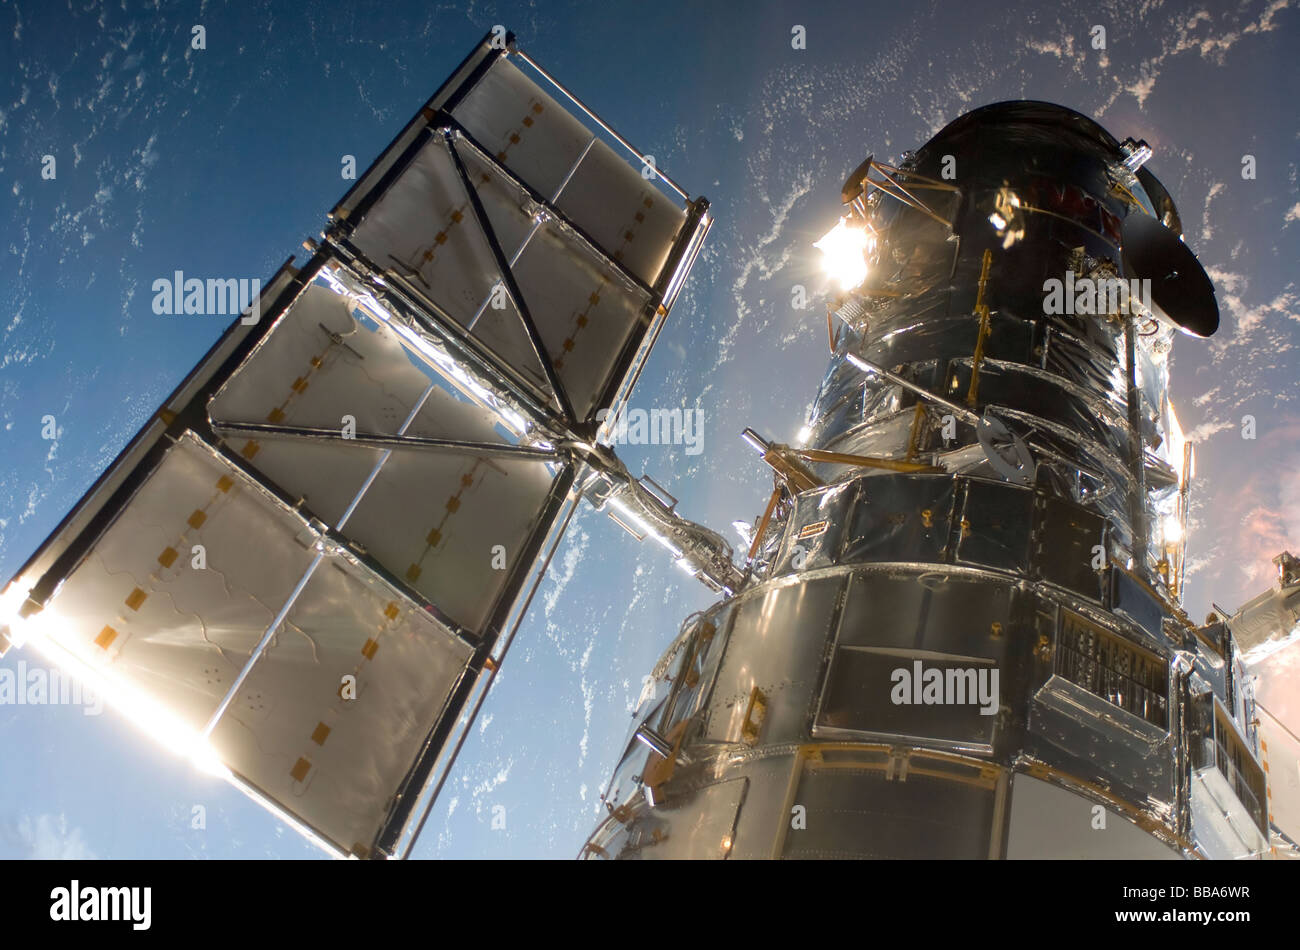 NASA Hubble Telescope during service mission - Stock Image